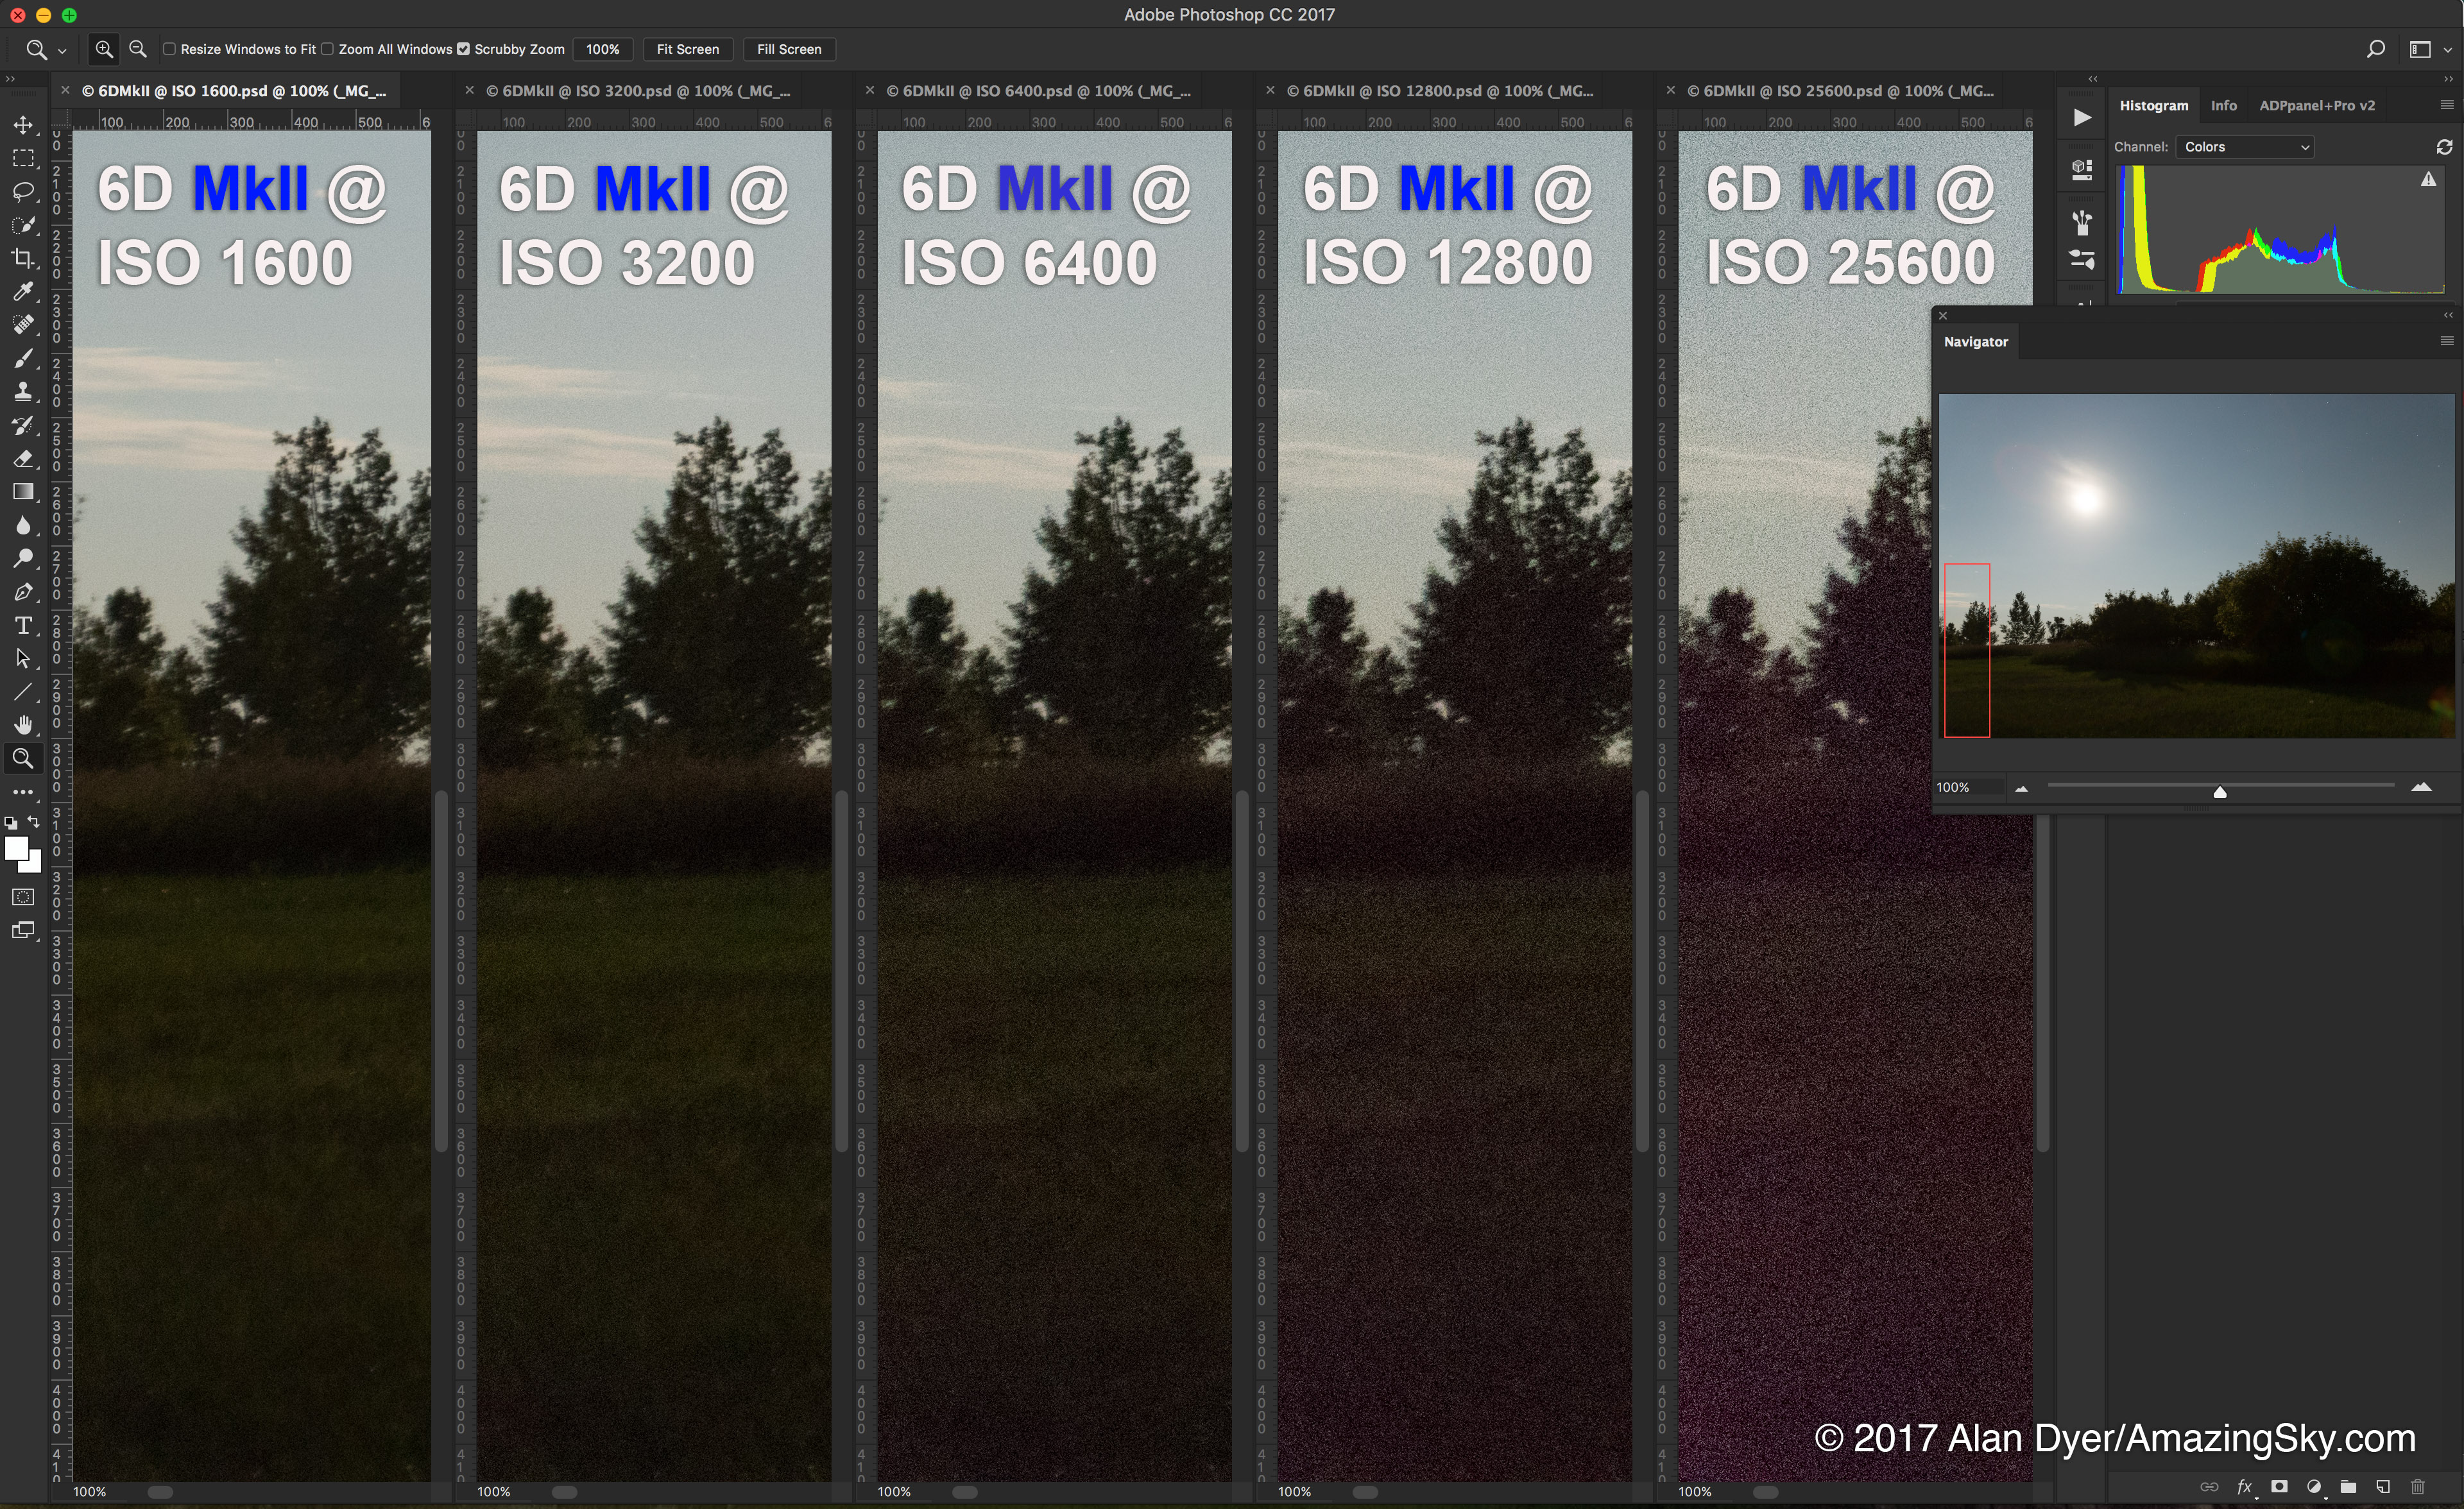 Testing the Canon 6D Mark II for Nightscapes – The Amazing Sky